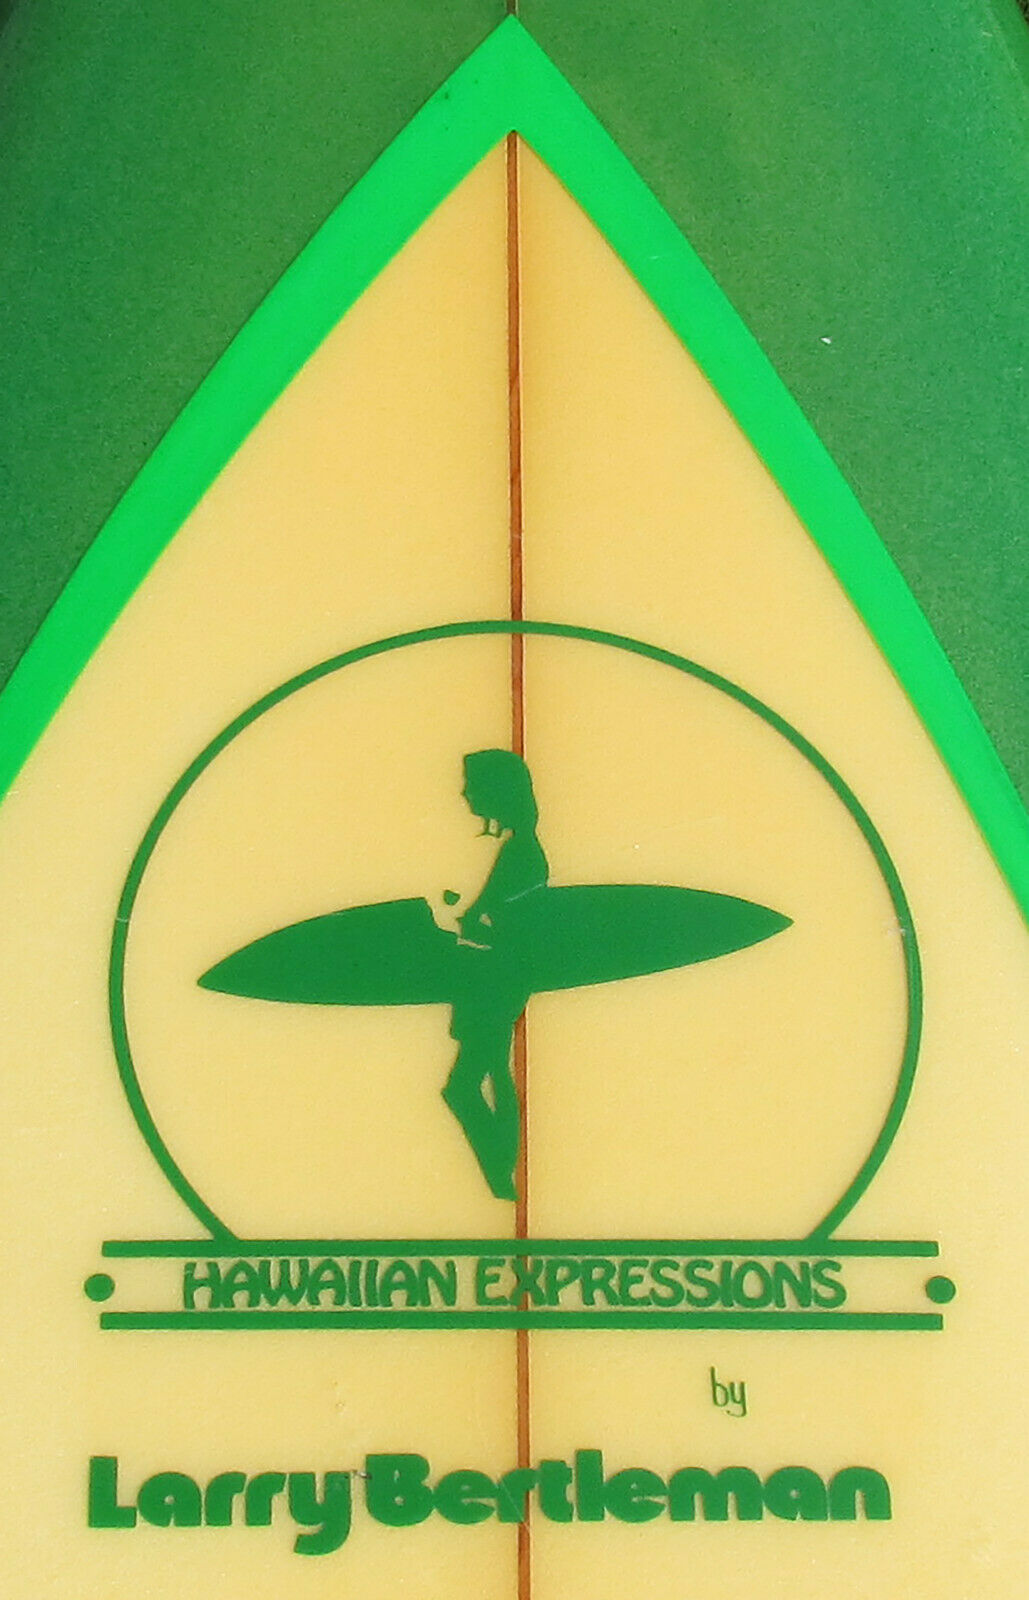 Larry Bertlemann Hawaiian Expressions Surfboard